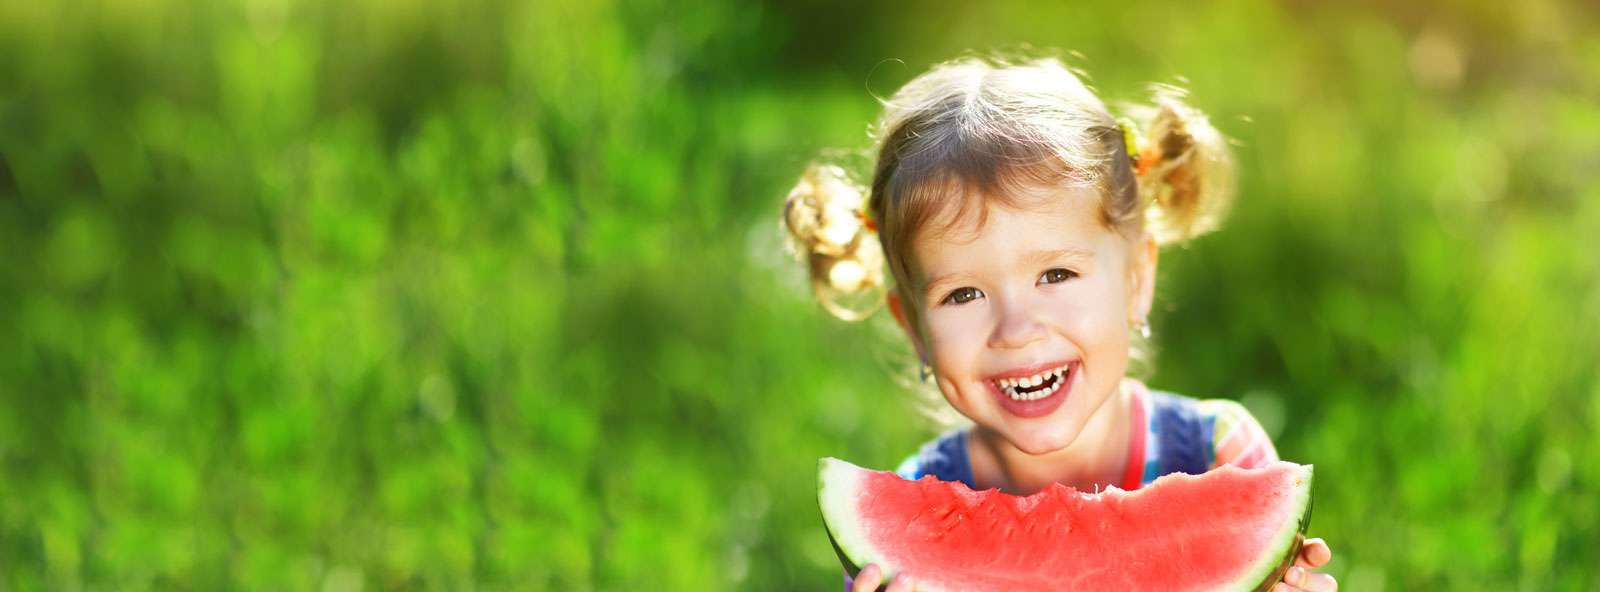 young-girl-eating-watermelon